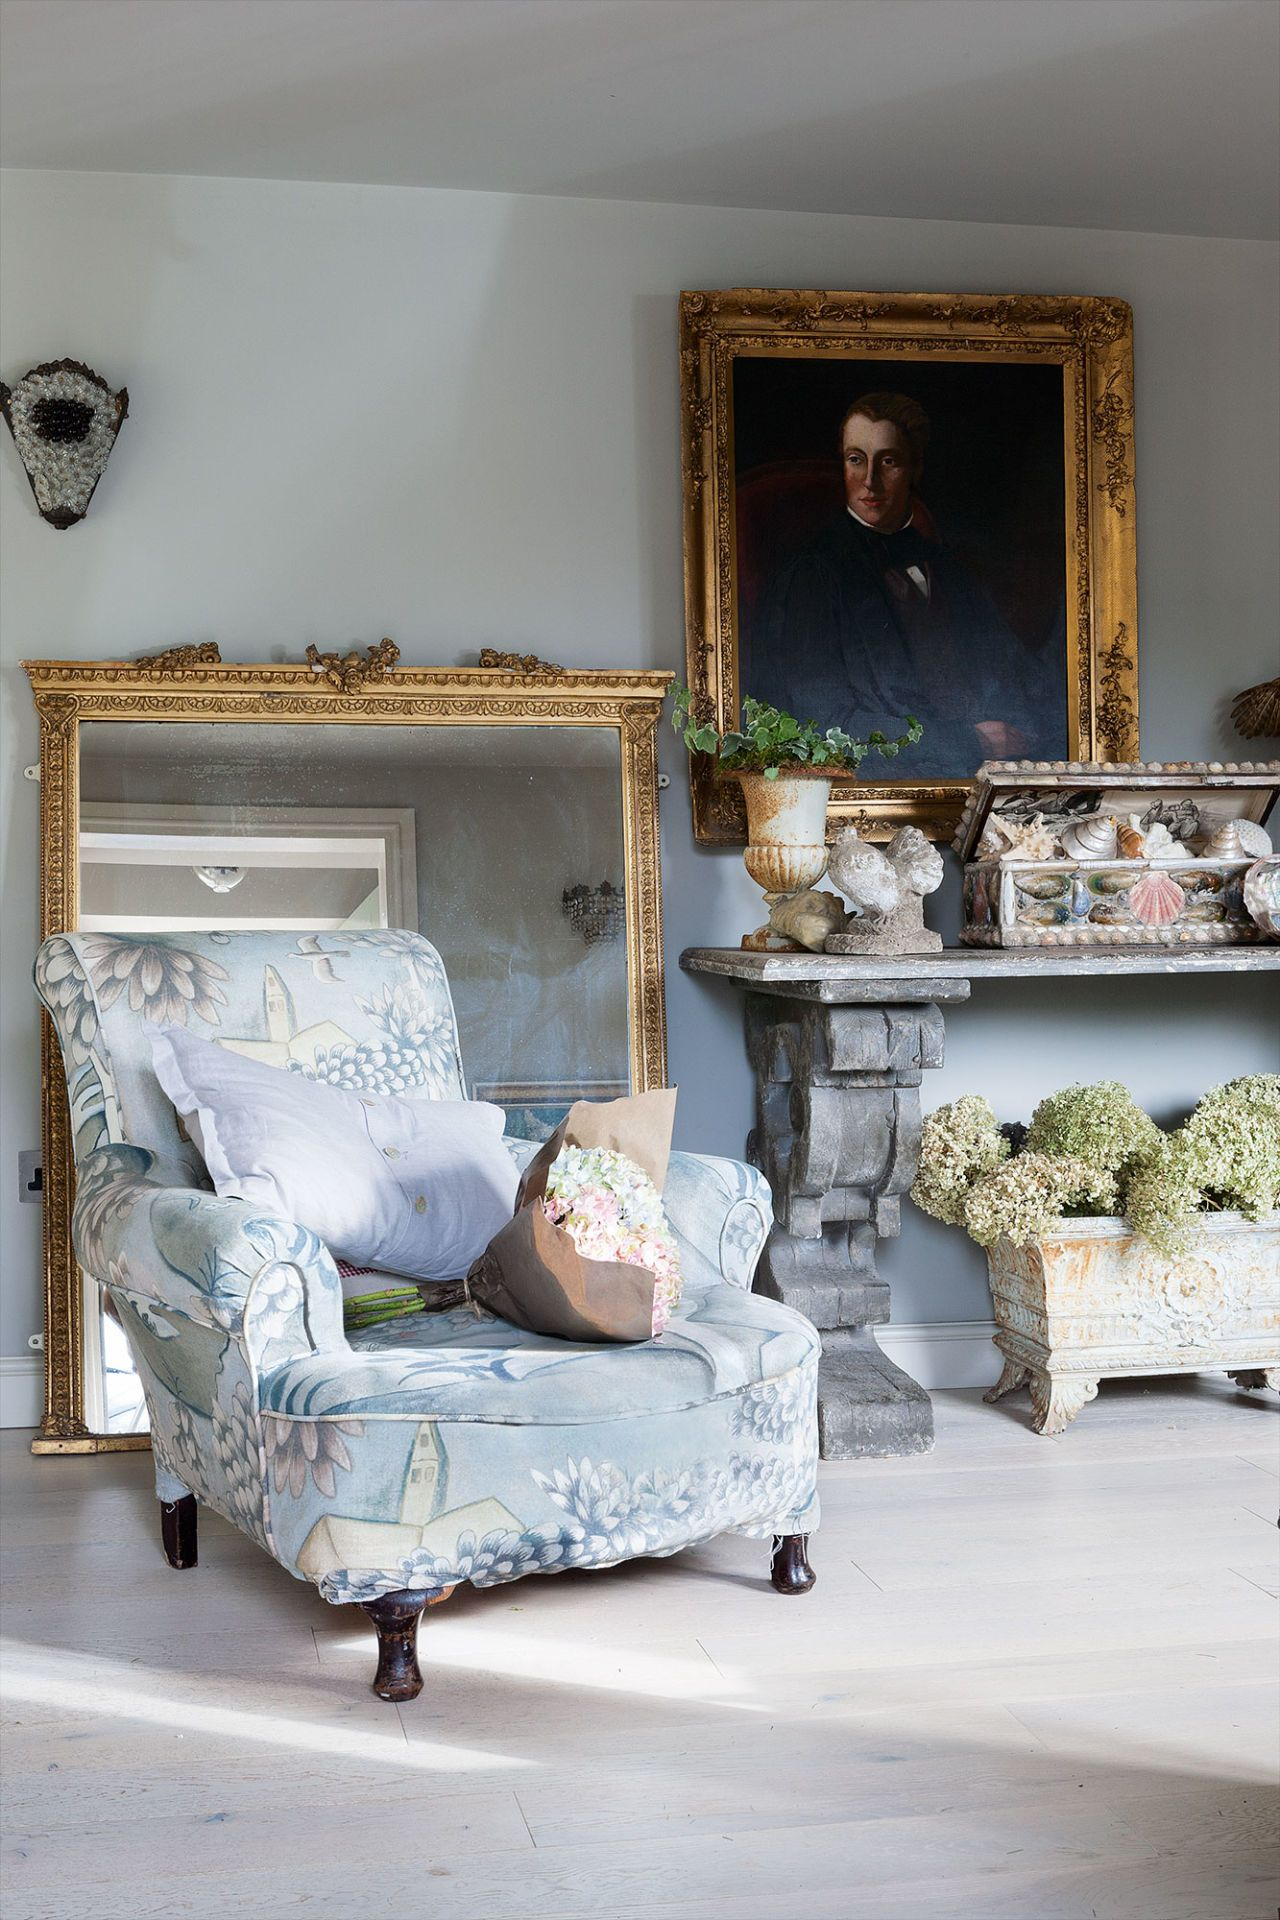 This Somerset cottage may look classically rustic but it's